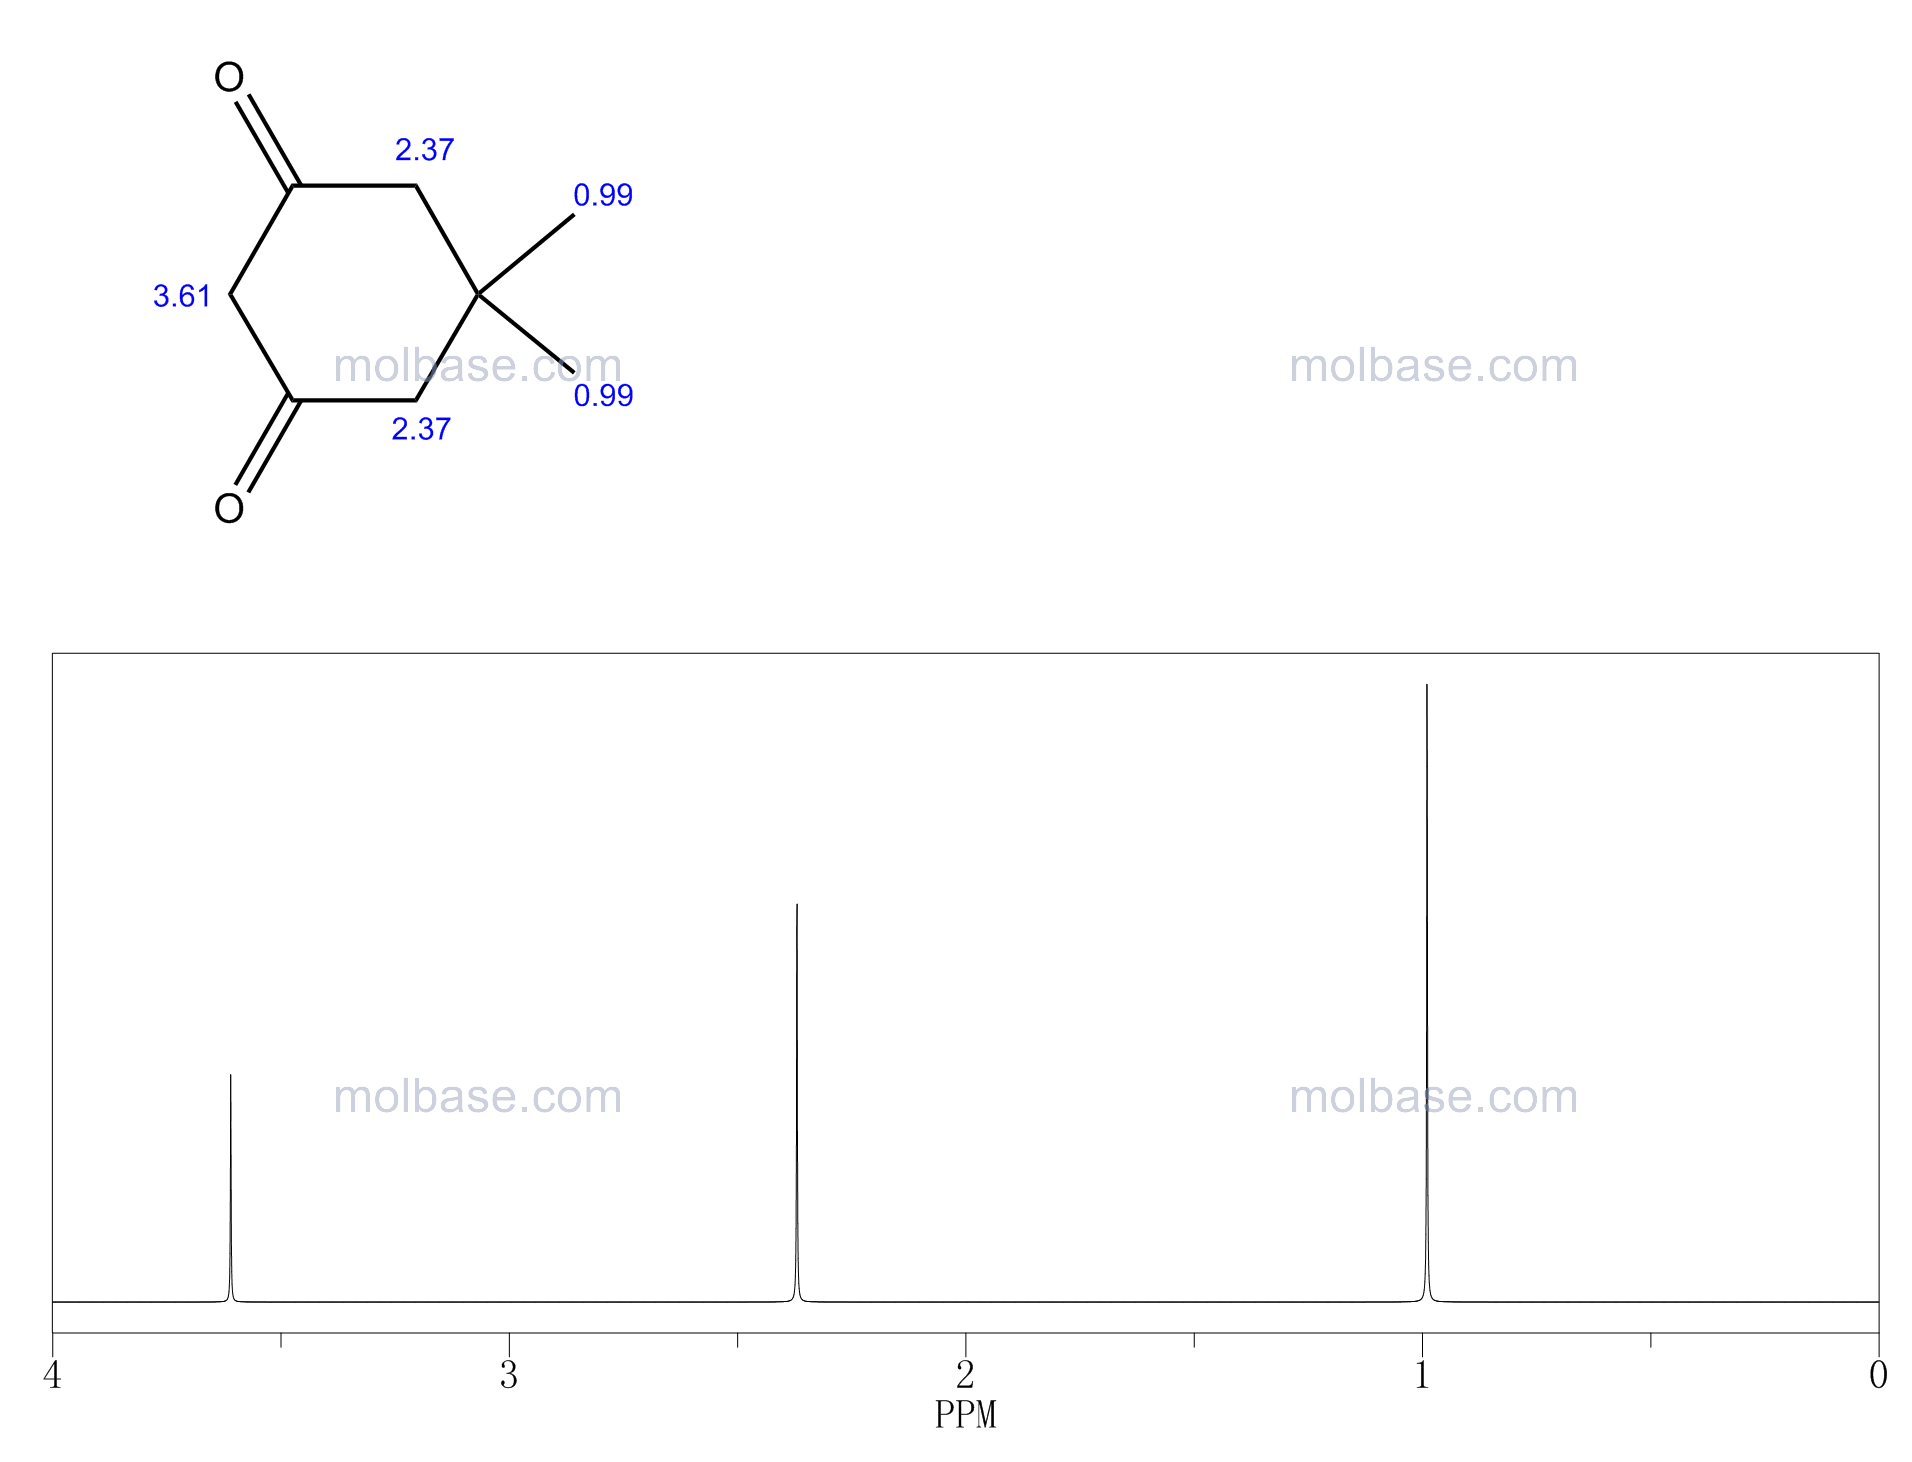 5,5-Dimethyl-1,3-cyclohexanedione NMR spectra analysis, Chemical CAS NO. 126-81-8 NMR spectral analysis, 5,5-Dimethyl-1,3-cyclohexanedione C-NMR spectrum